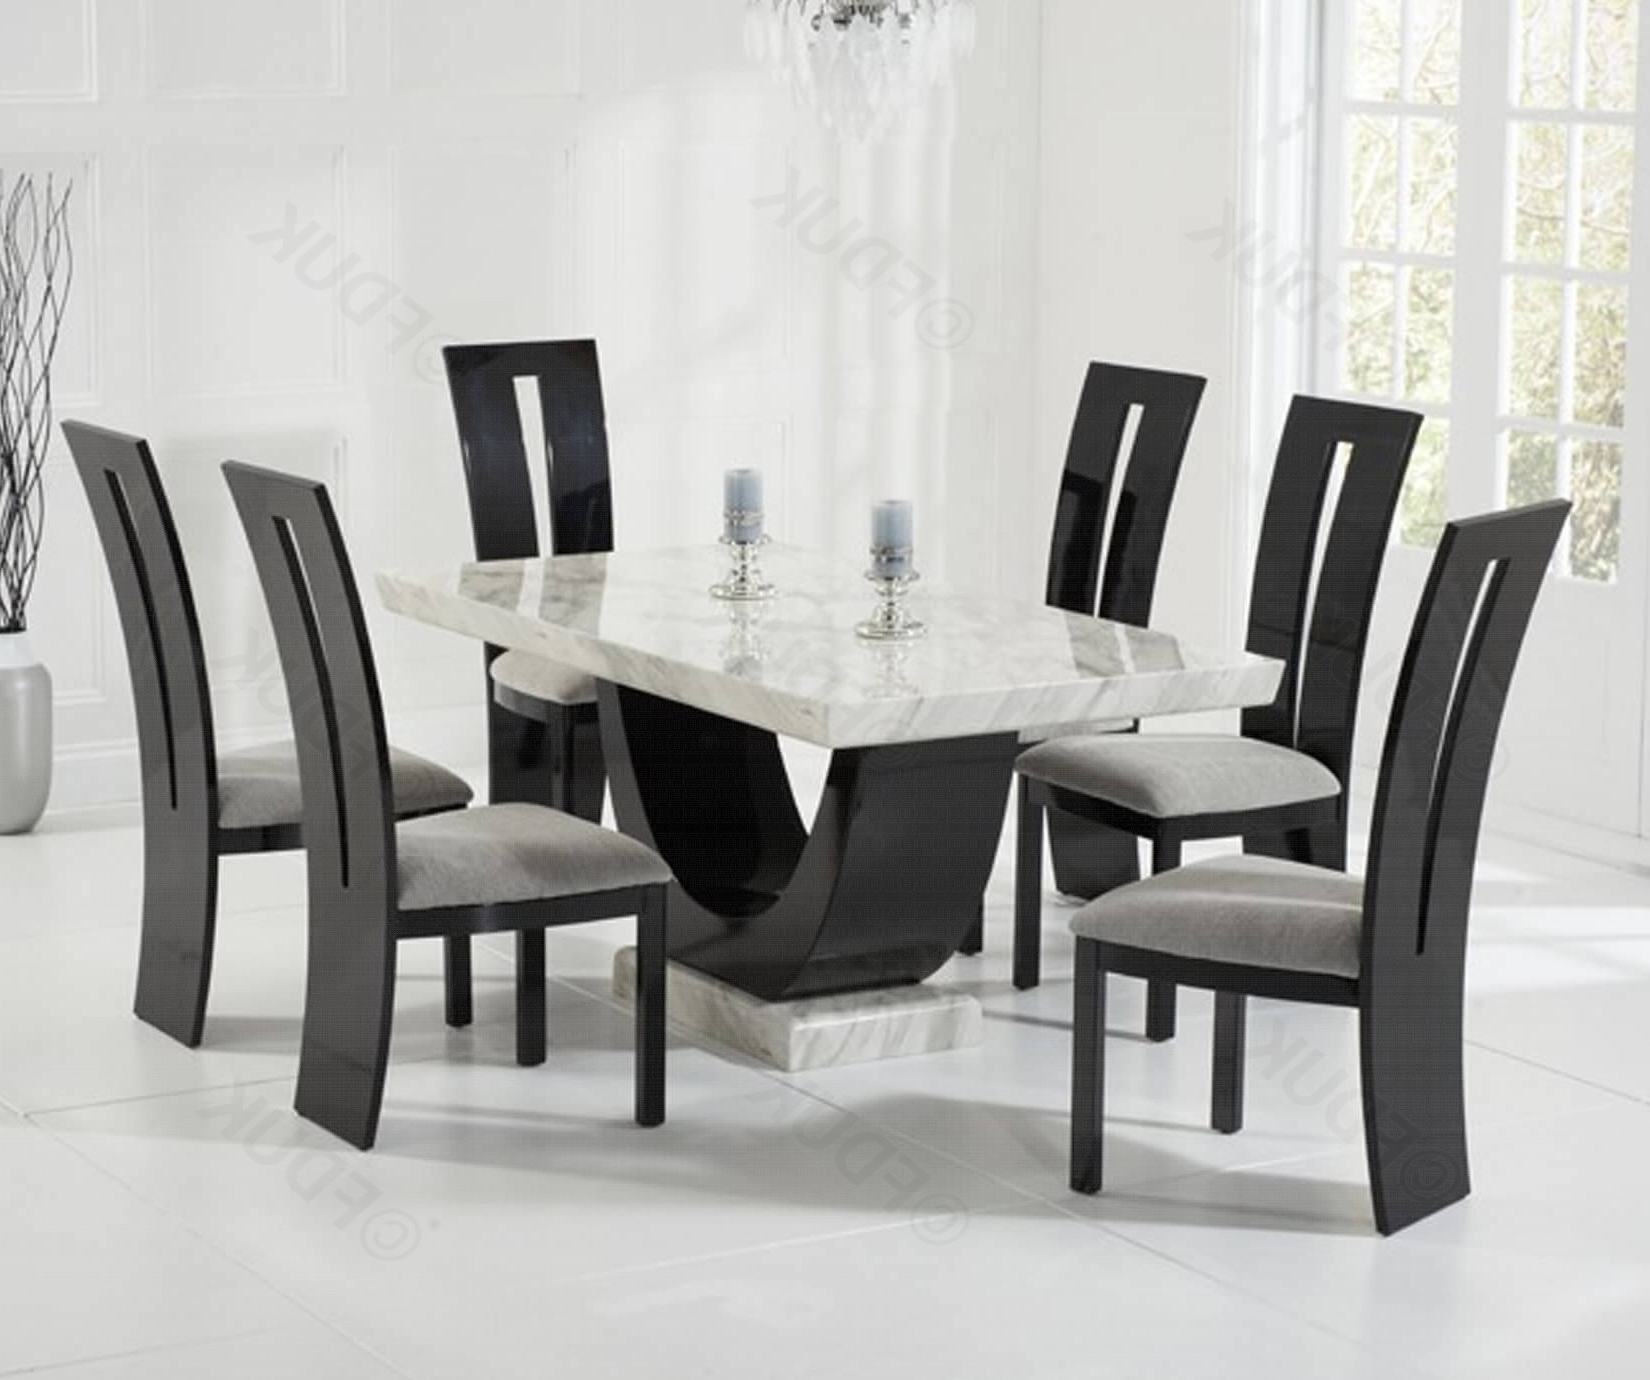 Cream And Black Constituted Marble Dining Set Within 2017 Marble Dining Chairs (View 5 of 25)